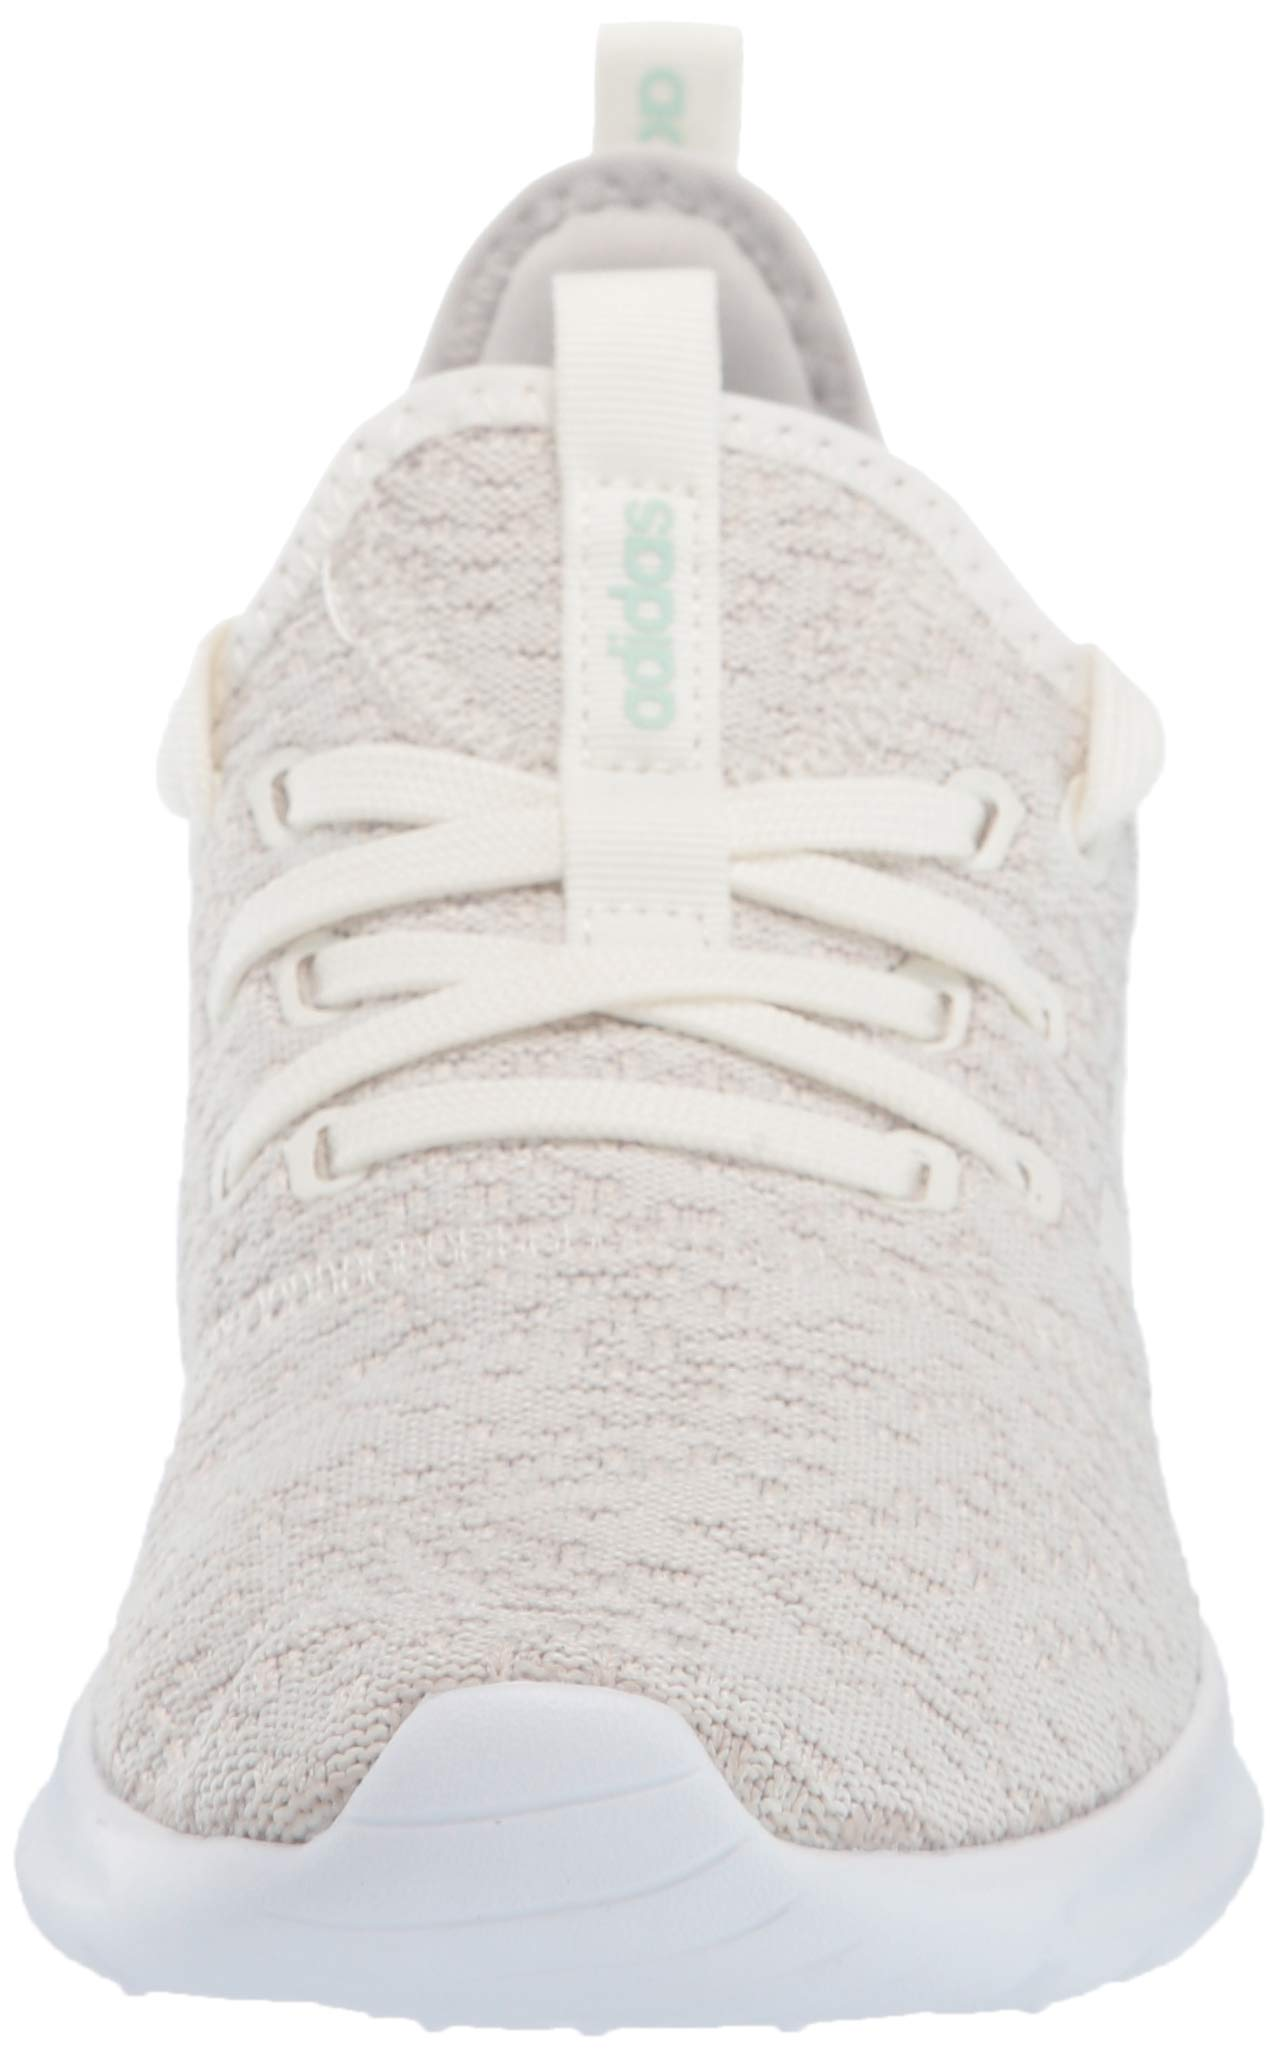 adidas Women's Cloudfoam Pure Running Shoe, Cloud White/Ice Mint, 5.5 Medium US by adidas (Image #4)